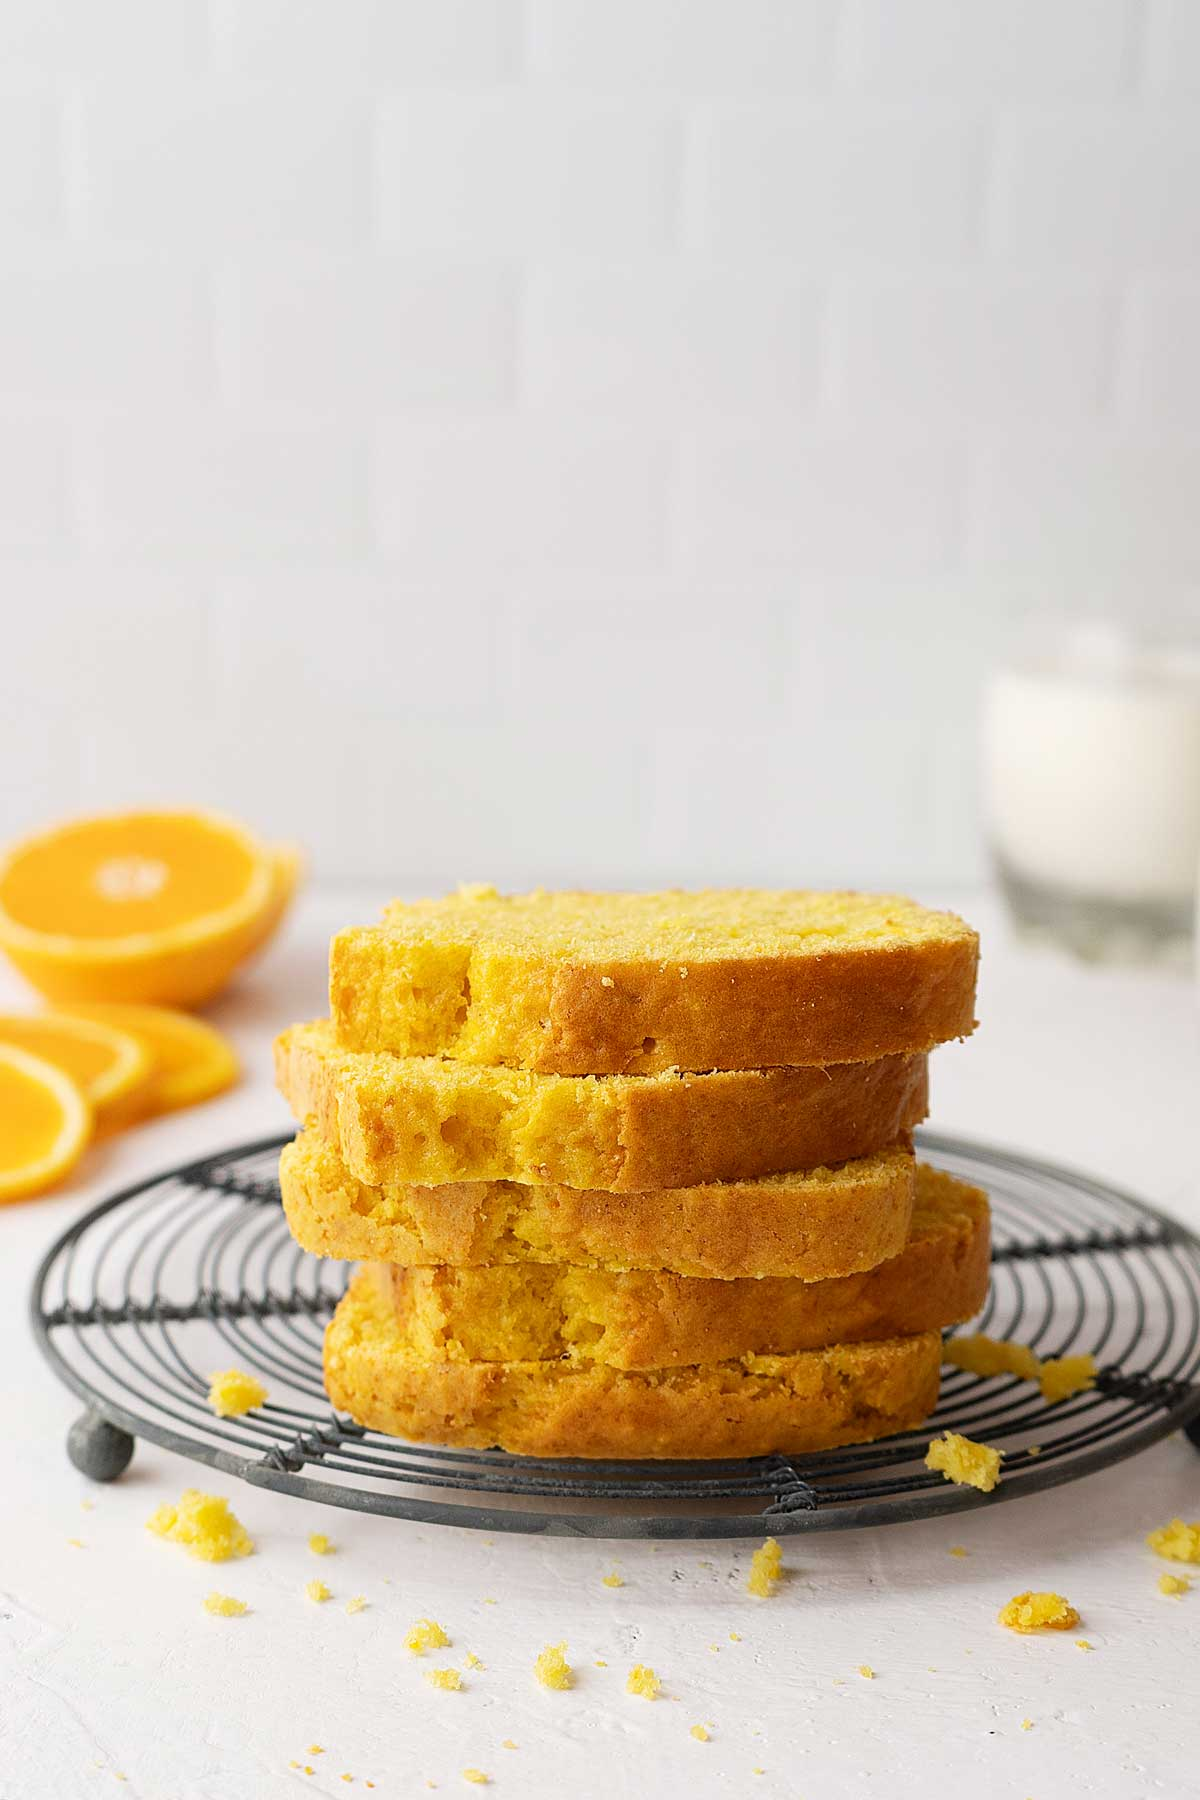 stacked slices of whole orange cake